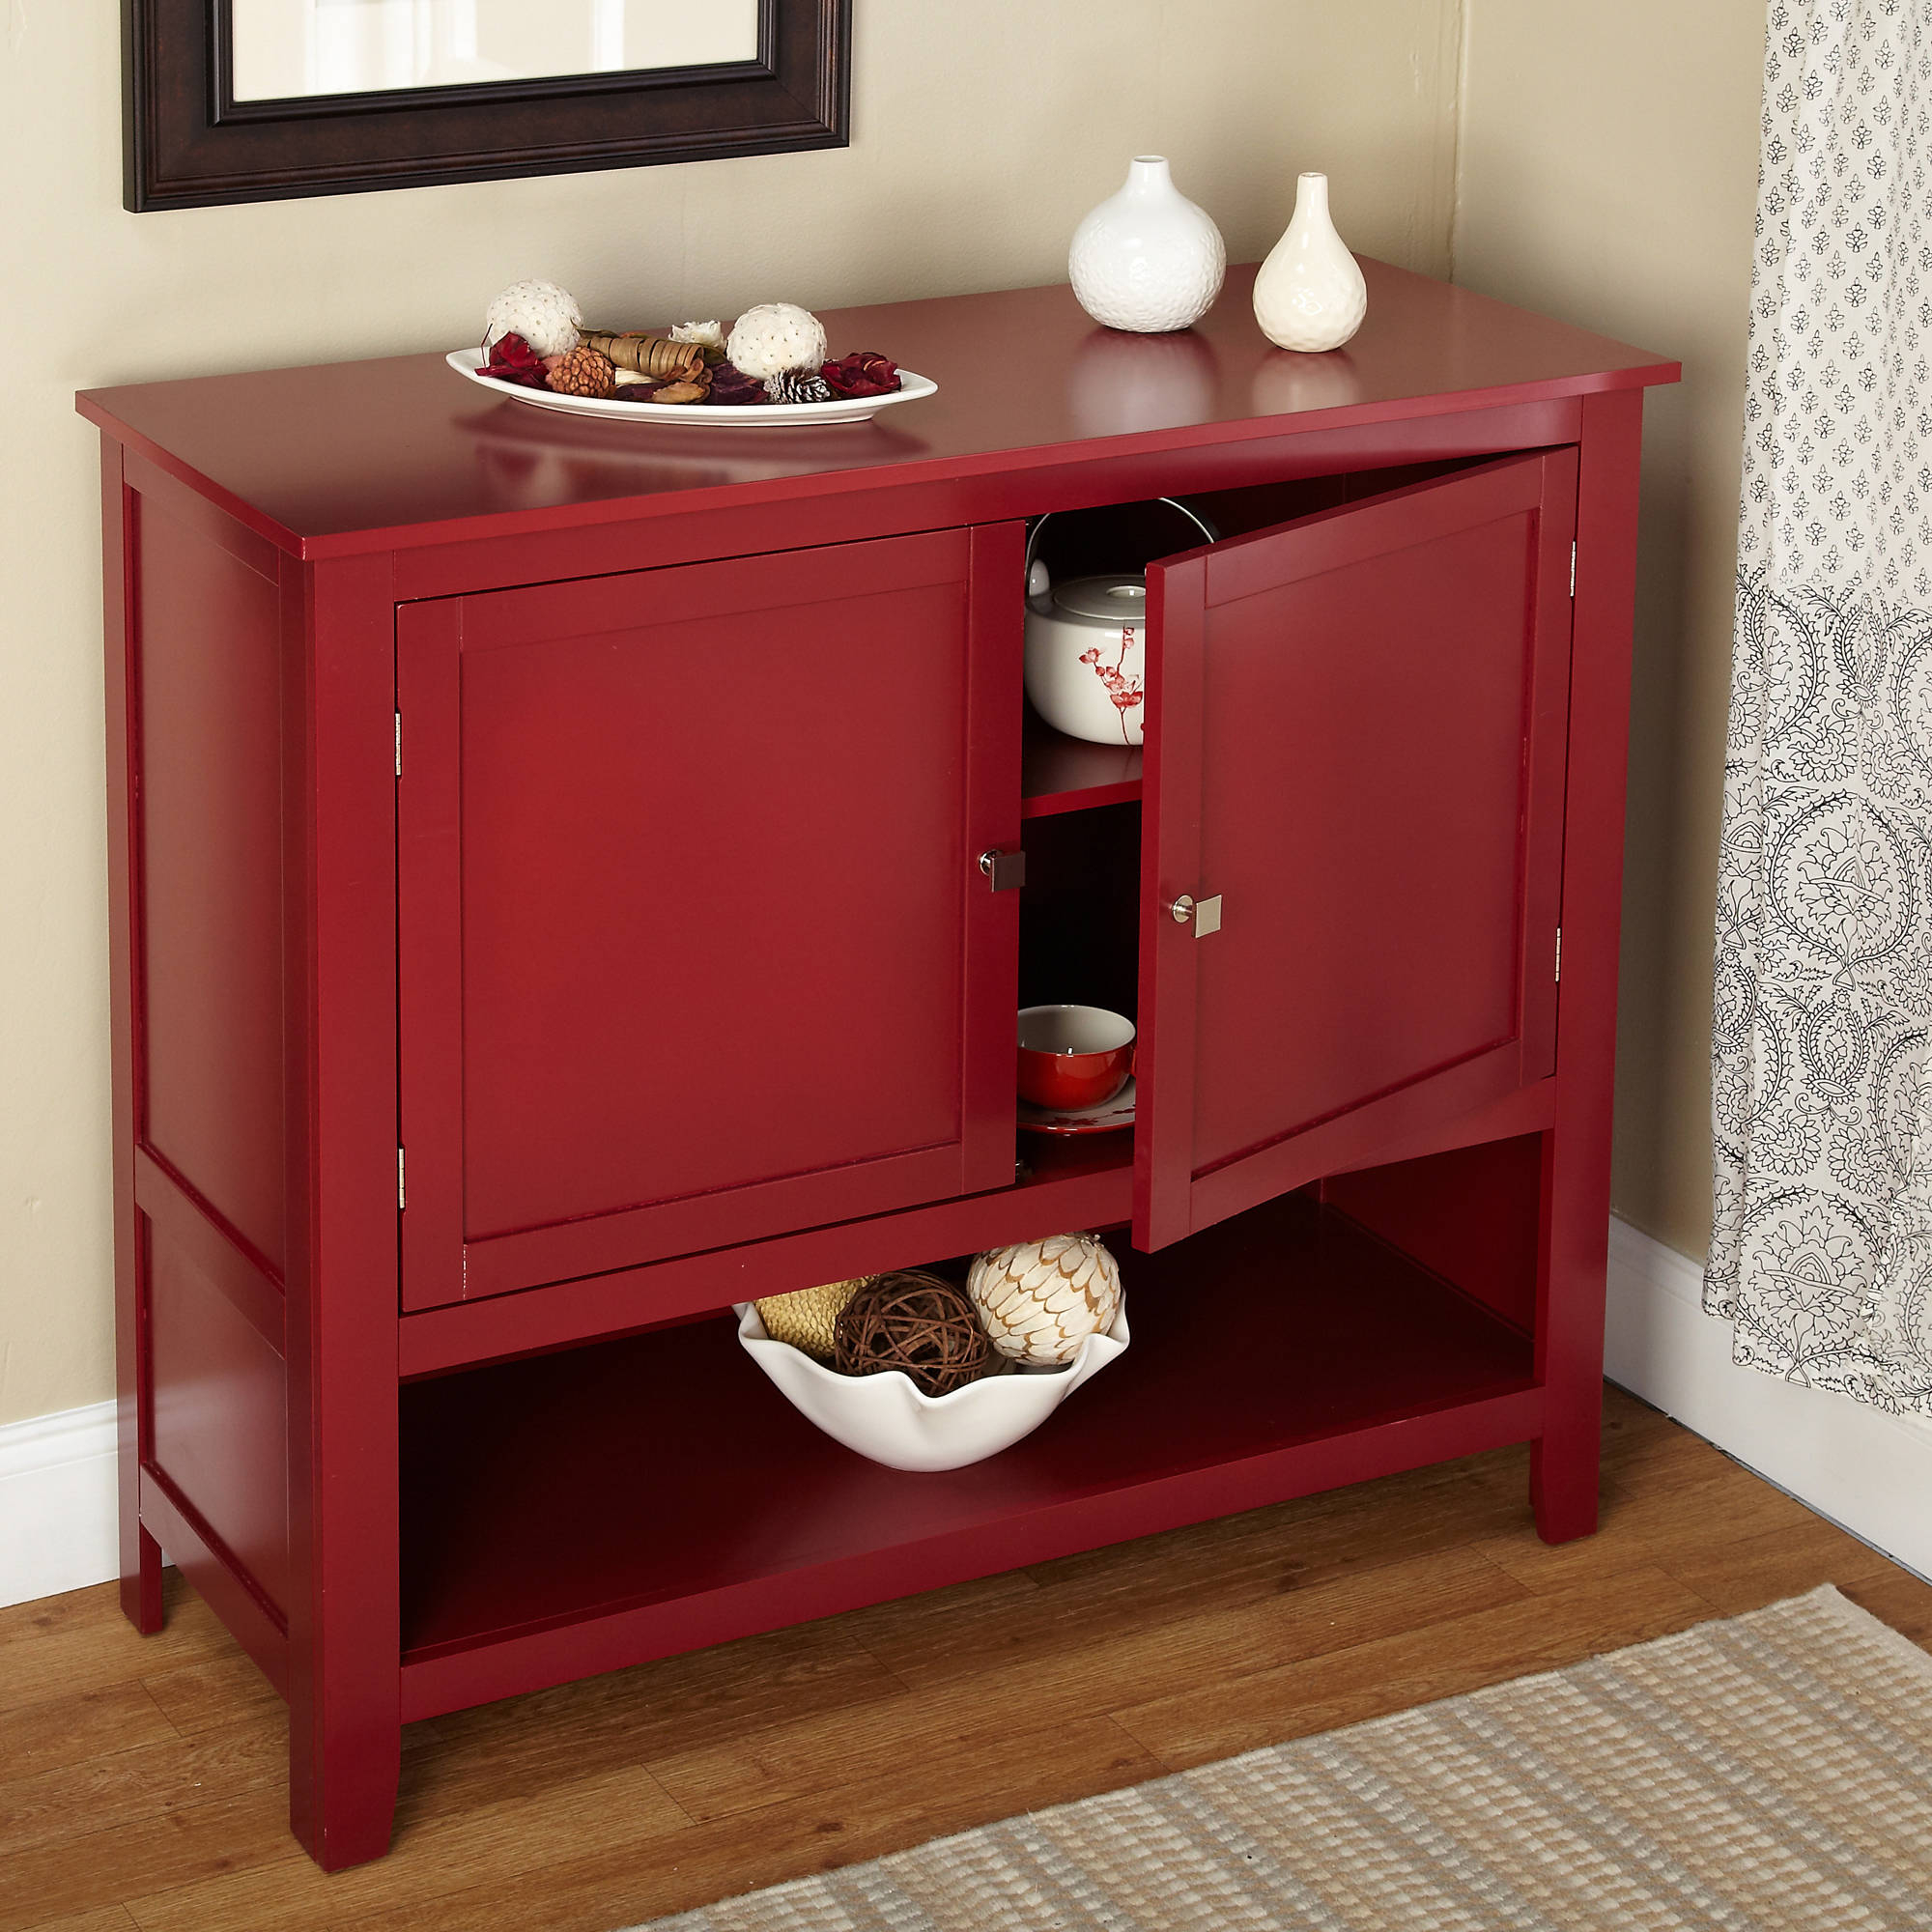 Details About Red Buffet Cabinet Kitchen Storage Shelf With Doors Table Furniture Dining Room Within Contemporary Wooden Buffets With One Side Door Storage Cabinets And Two Drawers (View 9 of 30)